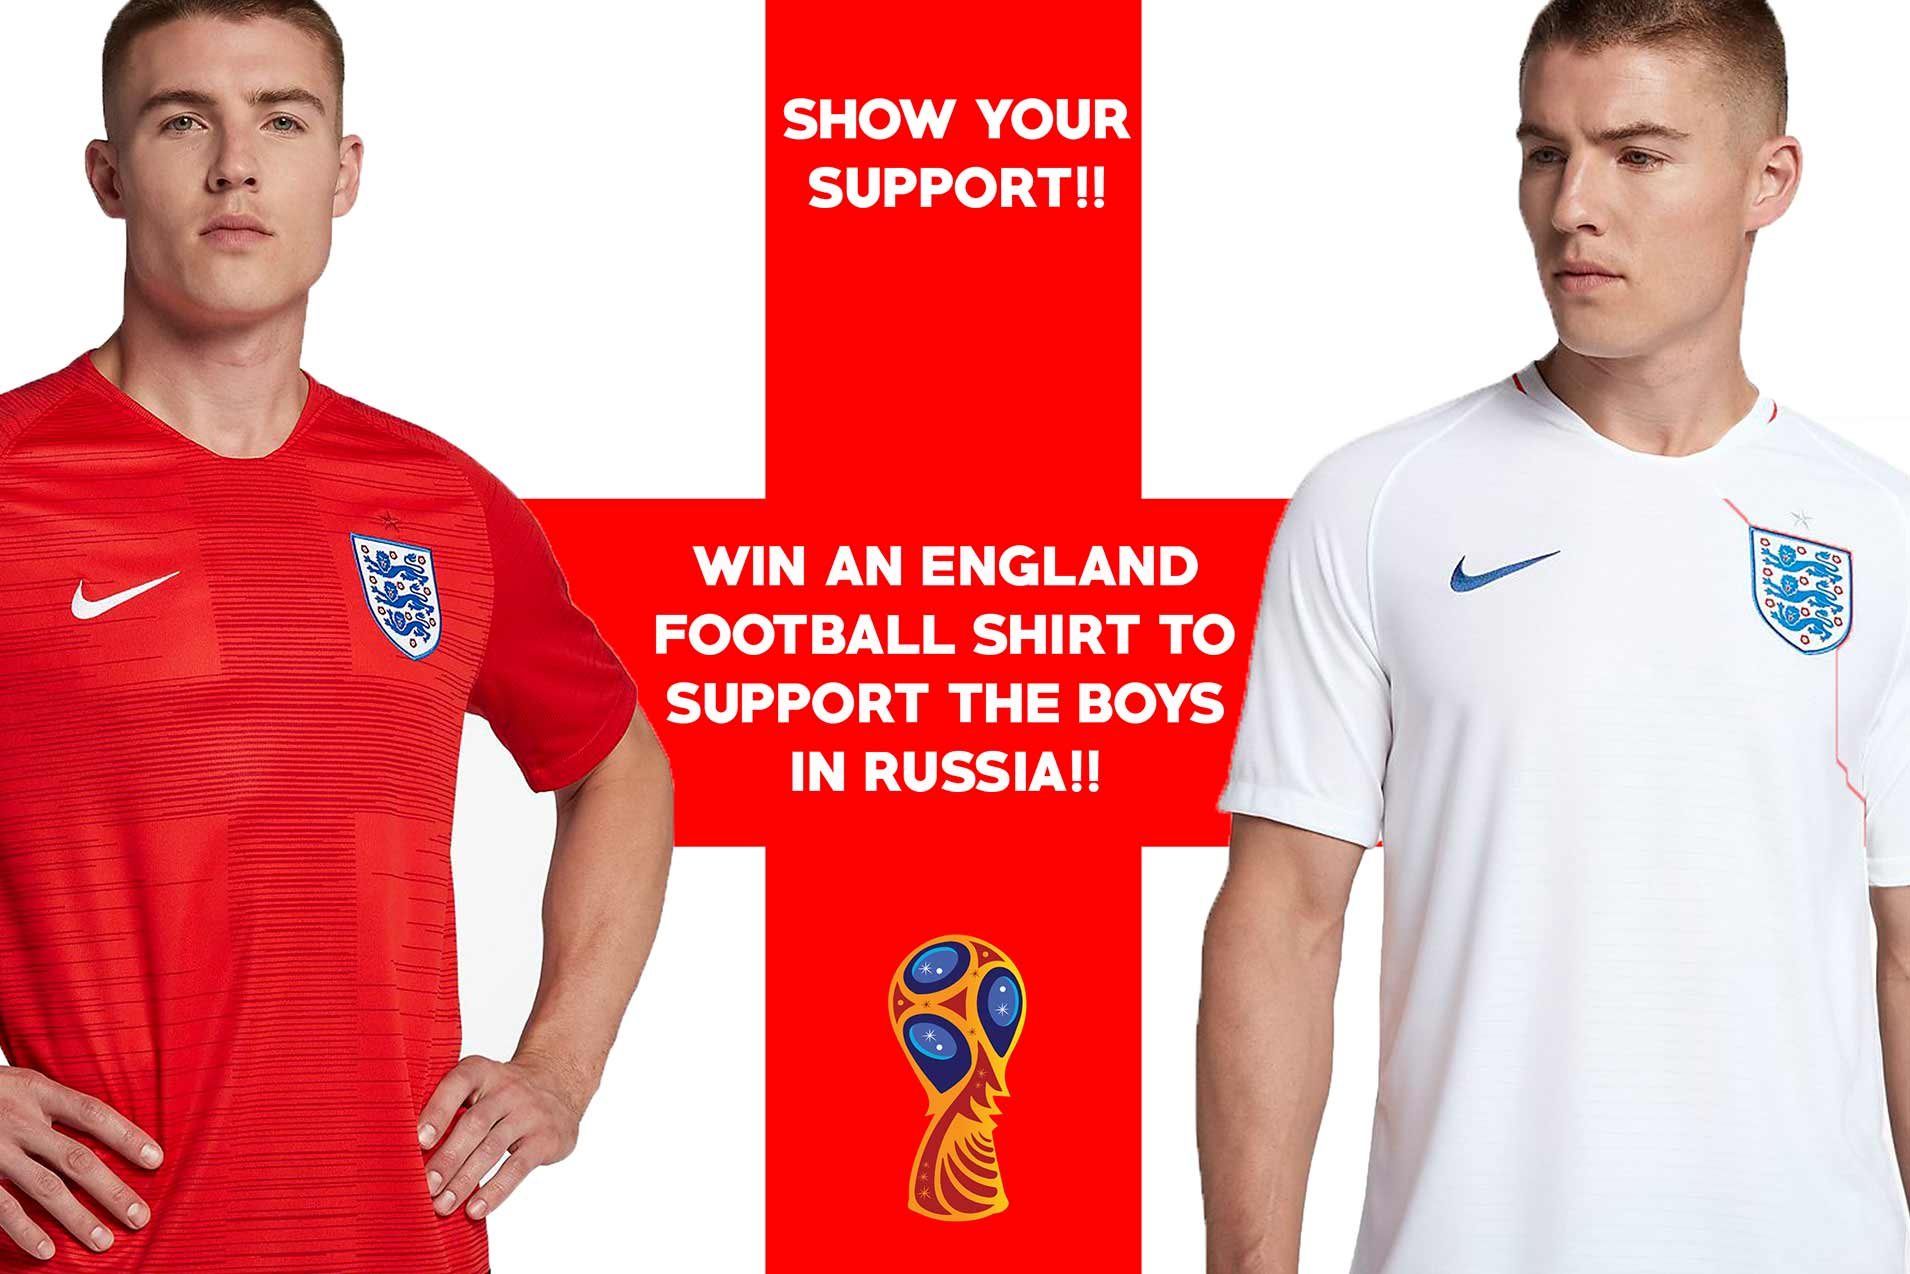 WIN and official England Football Shirt